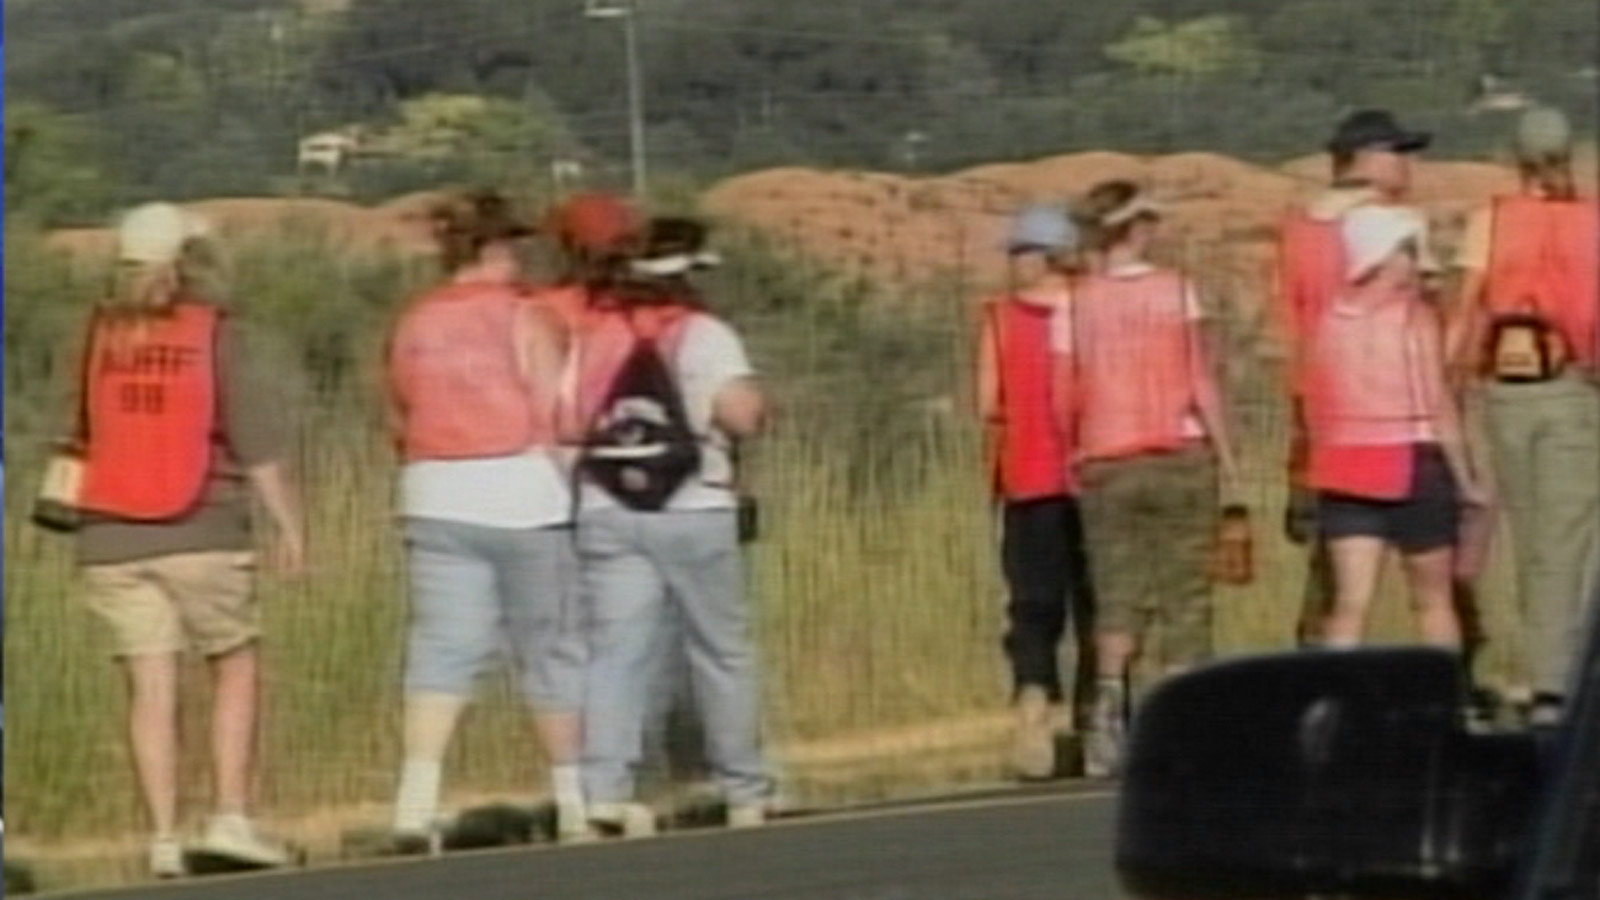 Volunteers search for Paige Birgfeld outside of Grand Junction after she went missing in 2007. (credit: CBS)